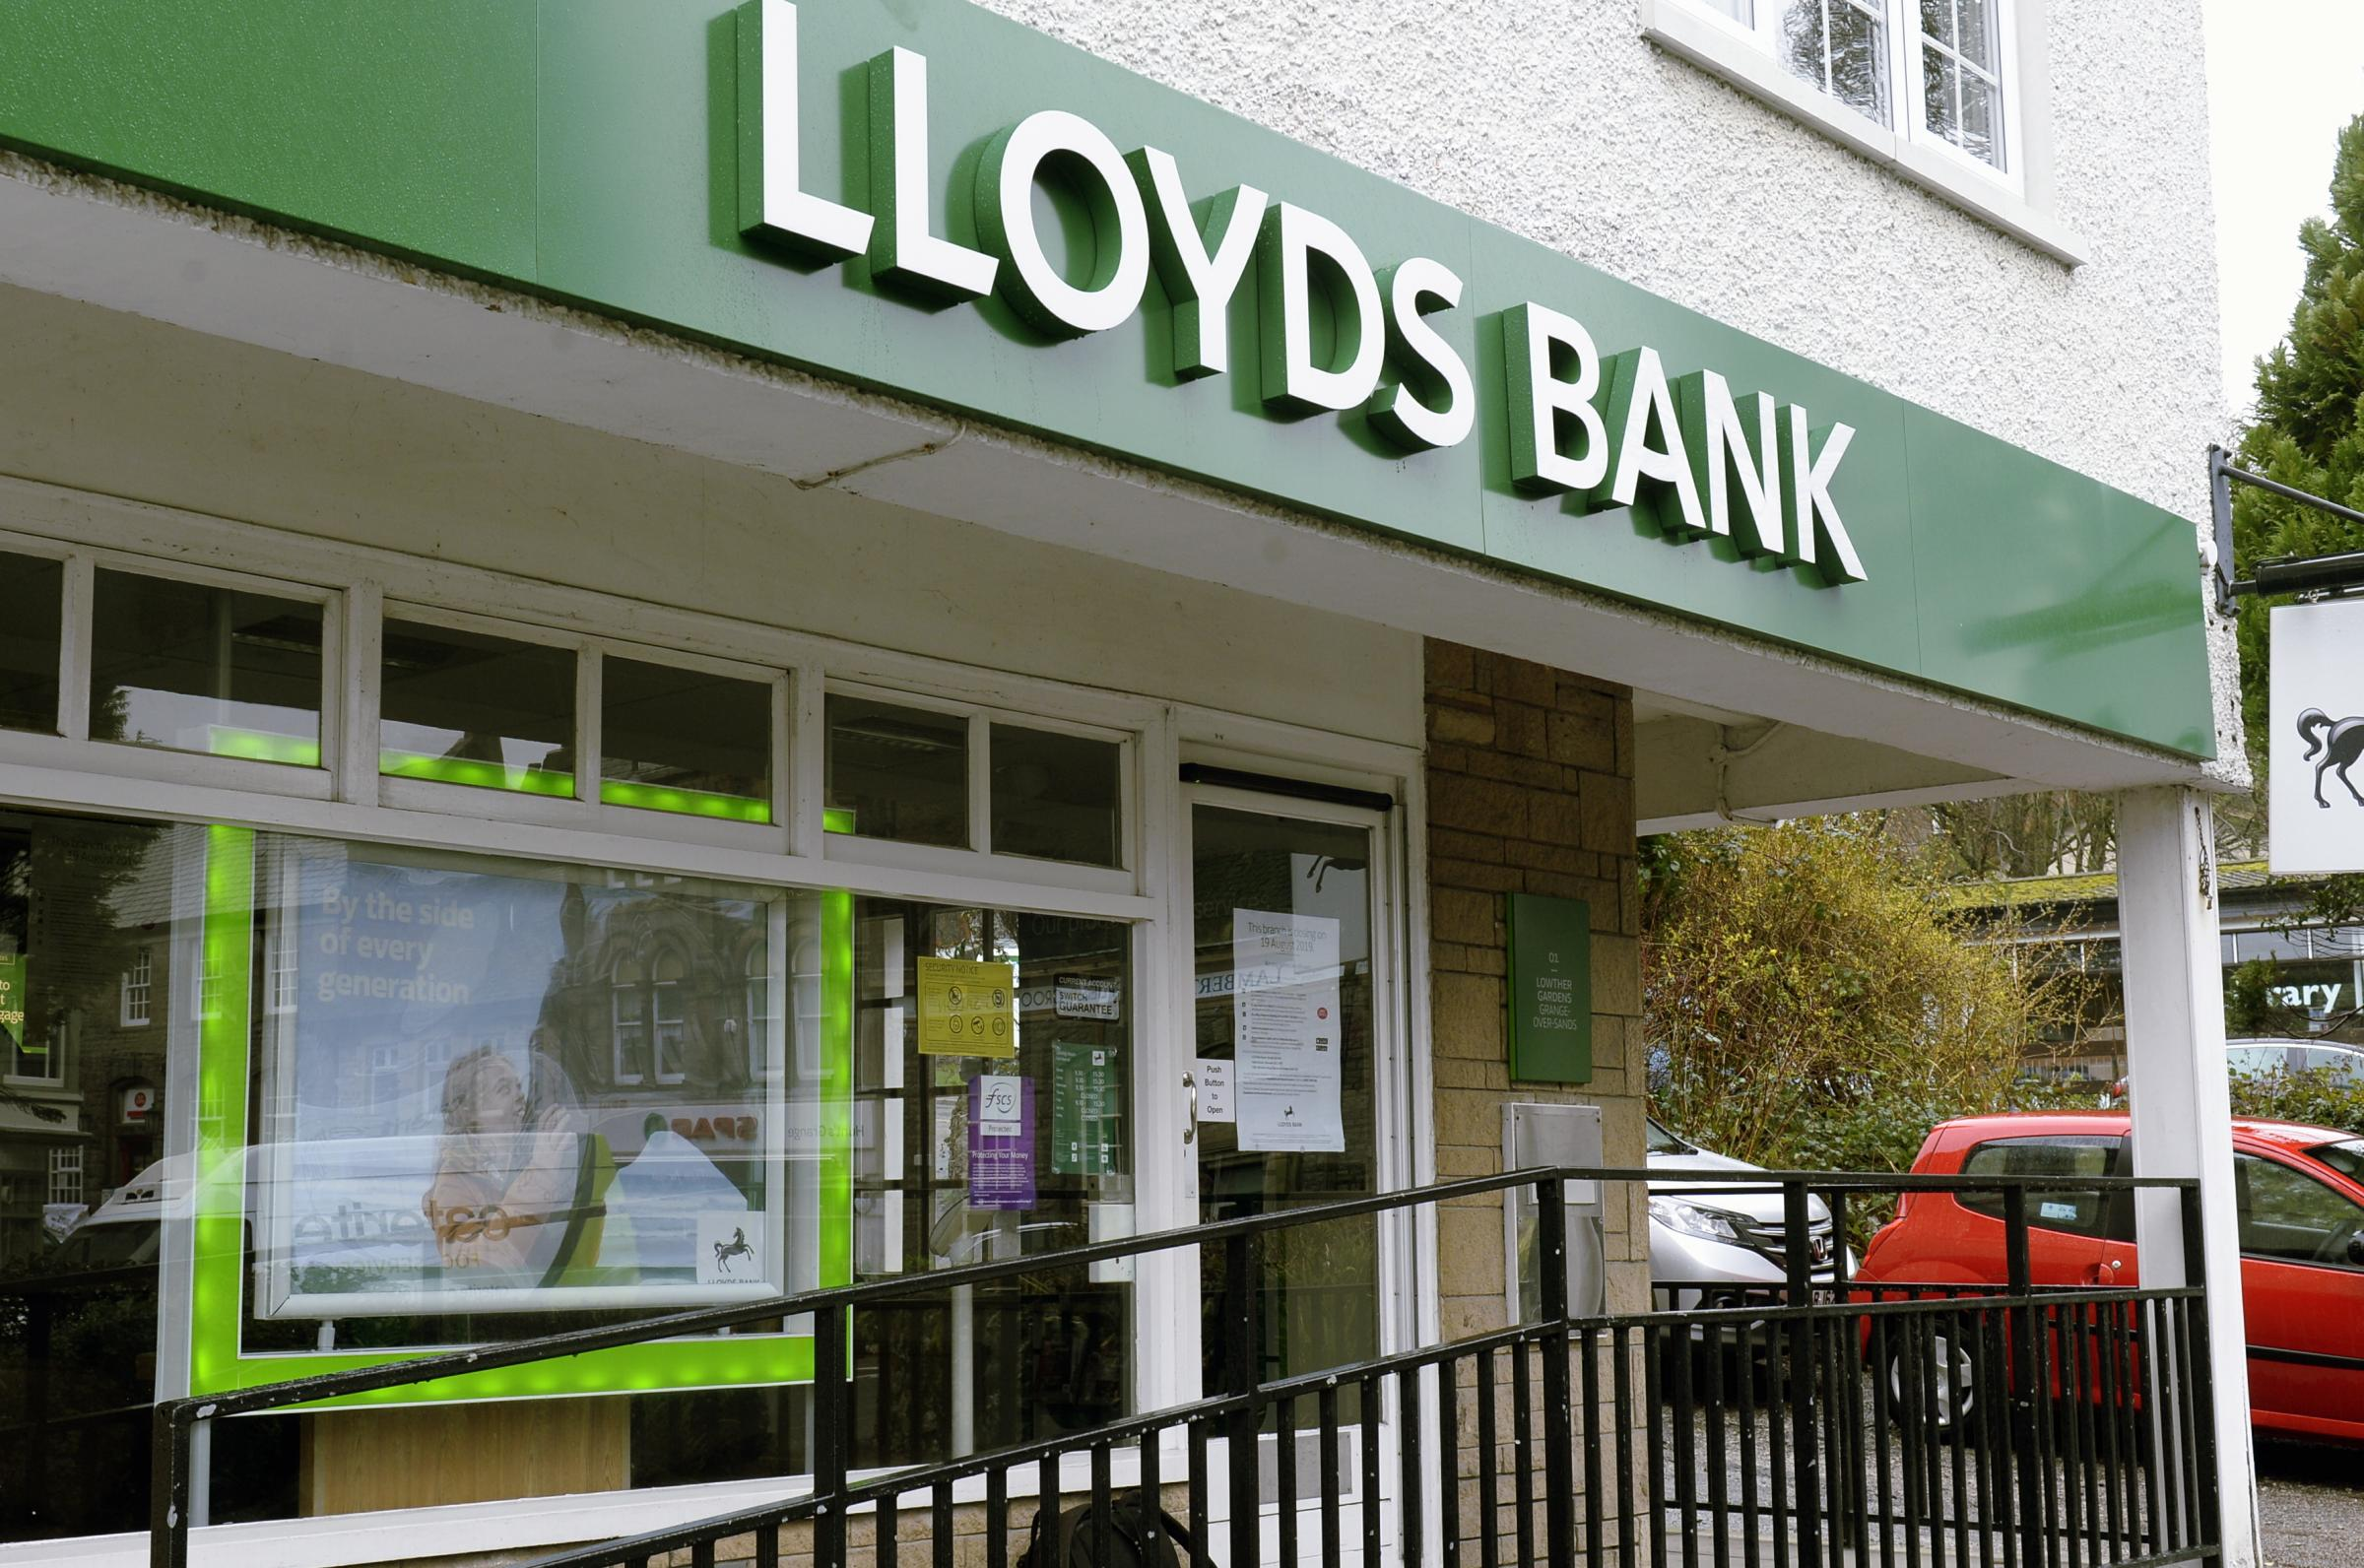 Lloyds Bank in Grange which is closing later this year...05/03/2019..JON GRANGER.